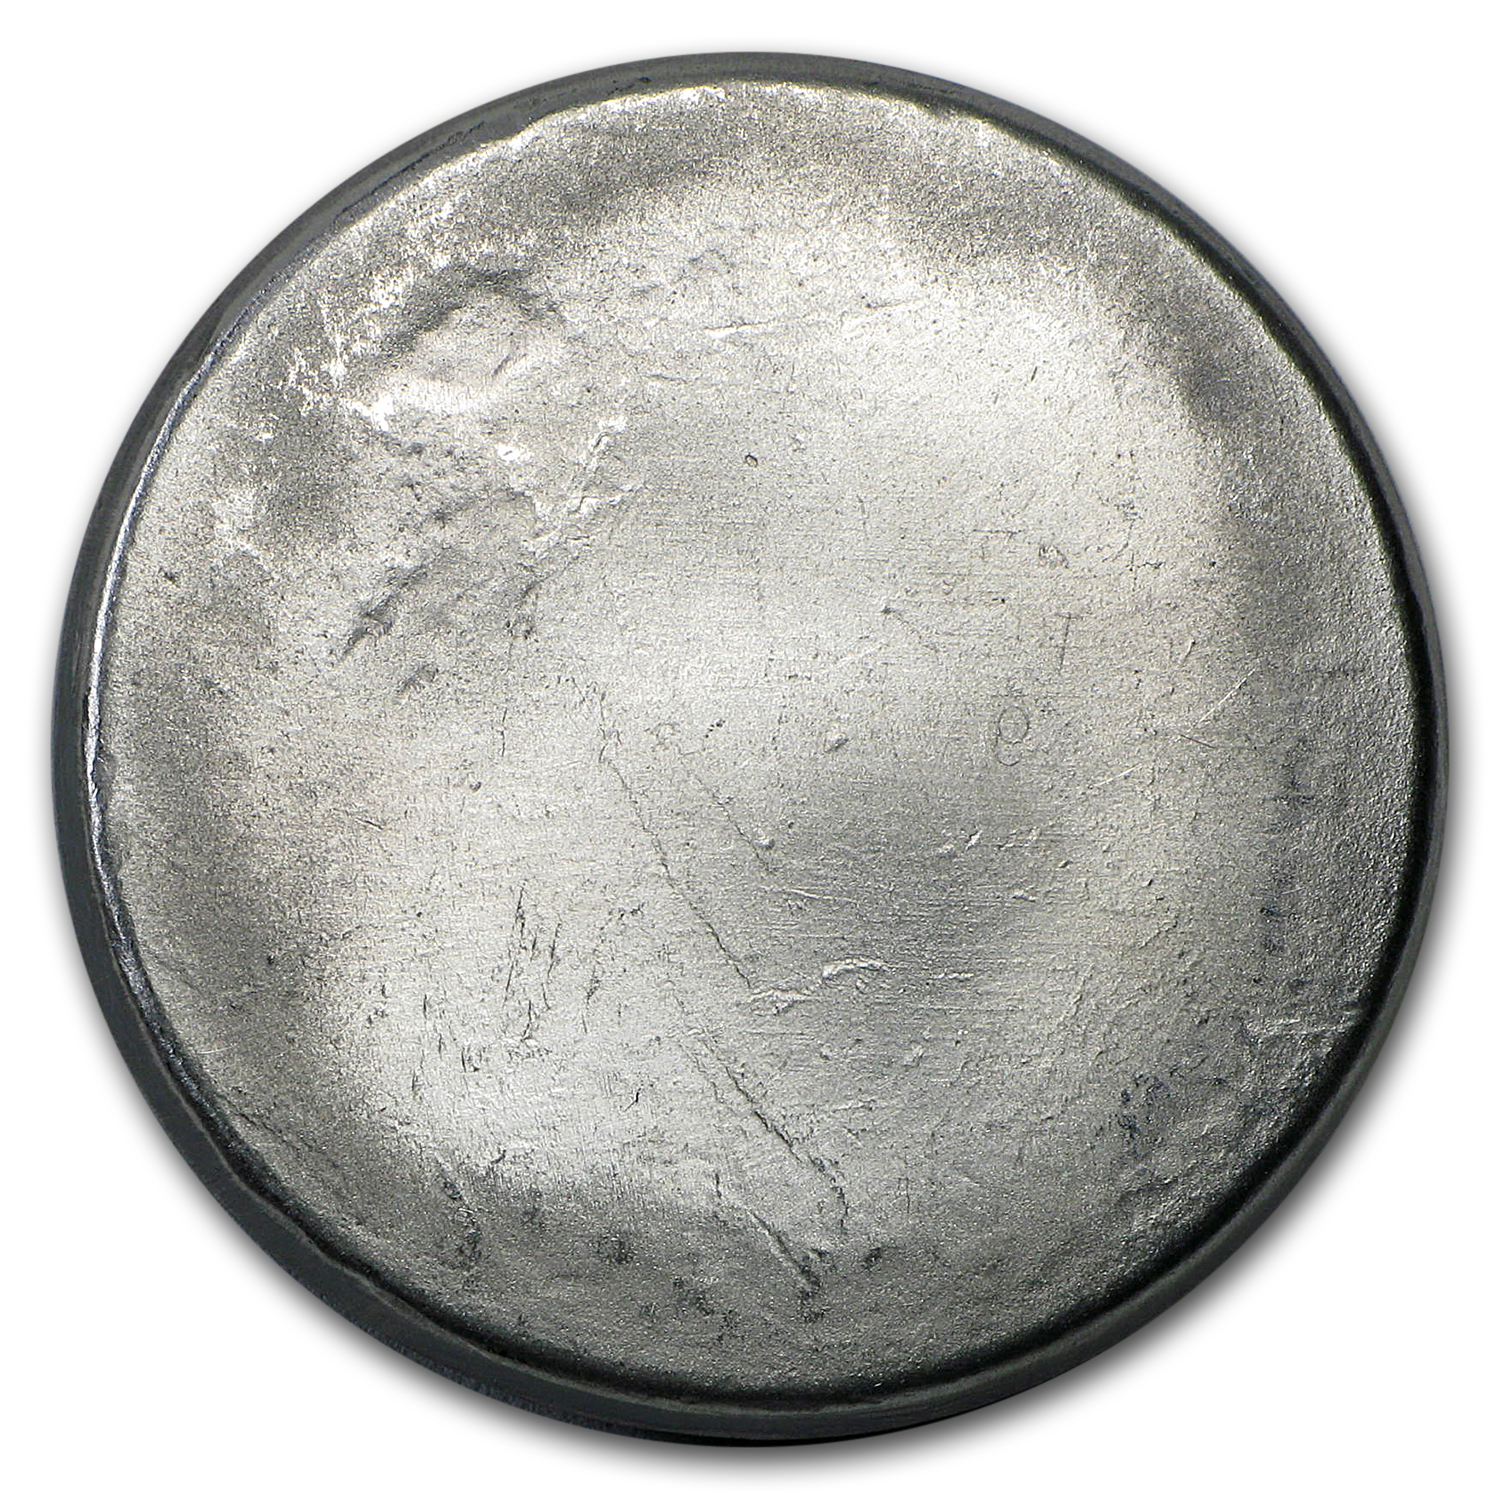 2 oz Silver Round - Bison Bullion